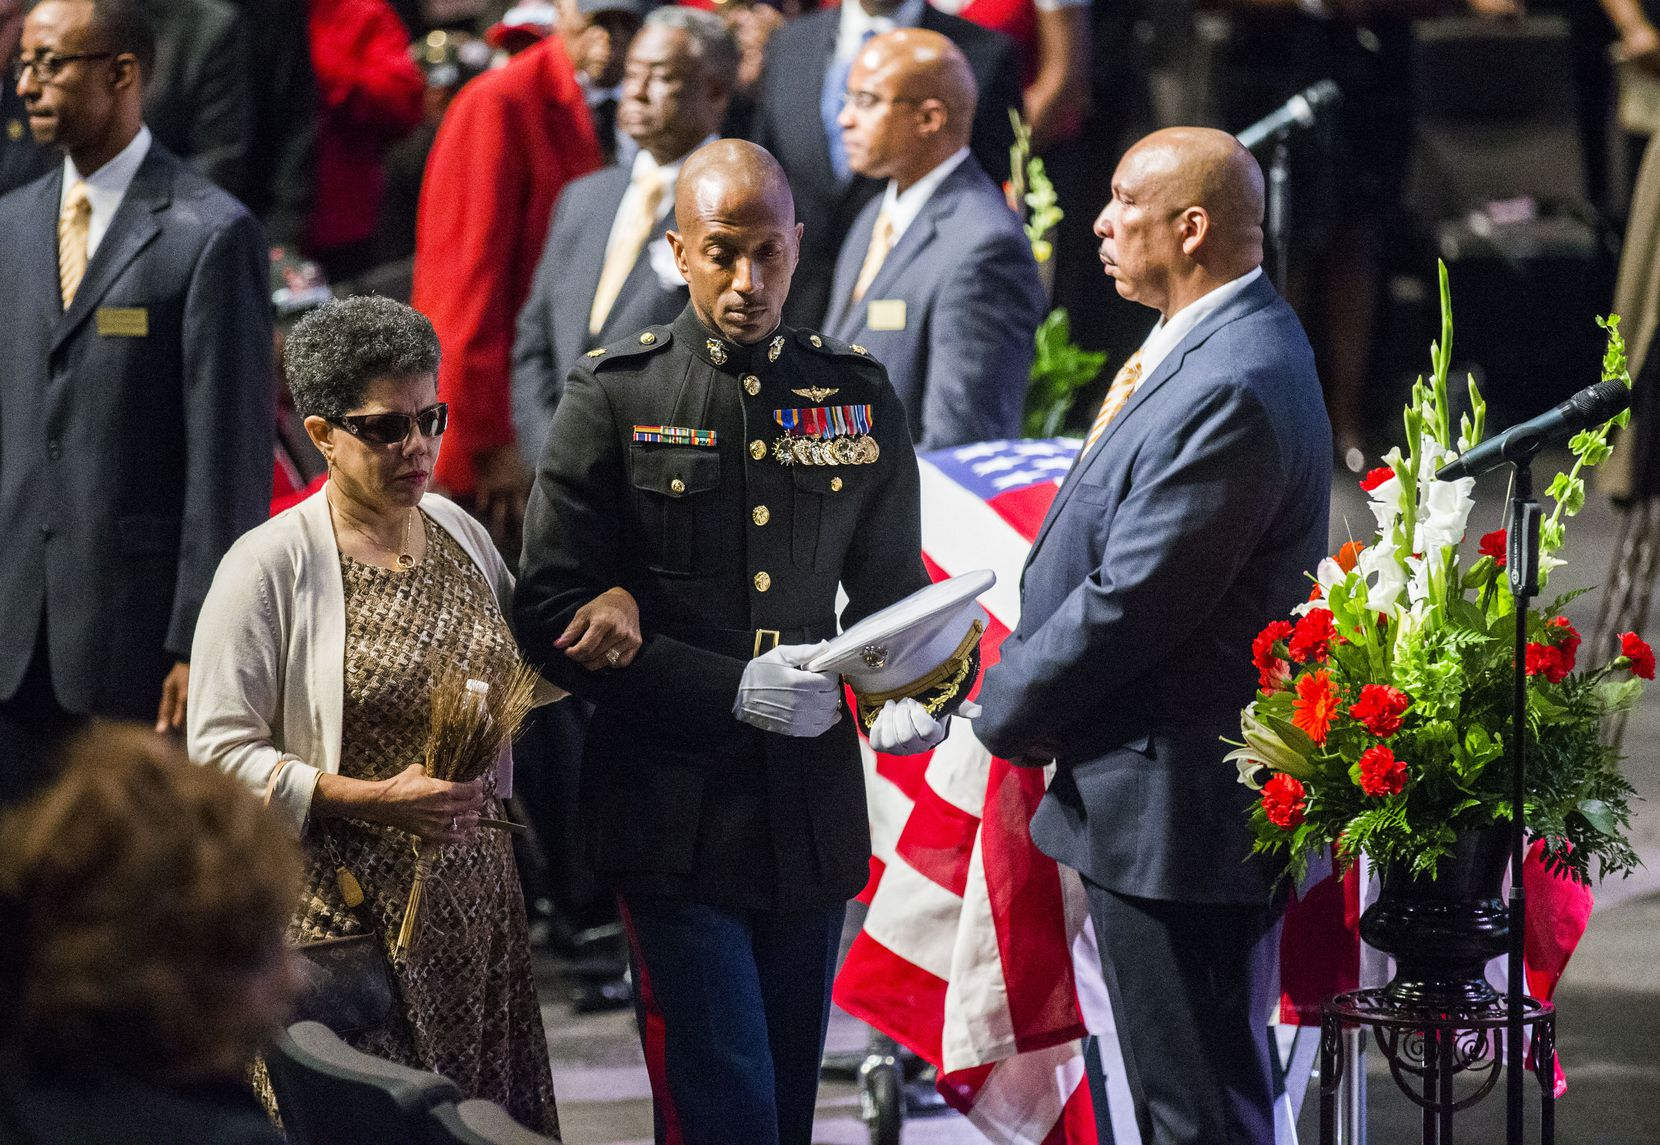 U.S. Marine Major Alejandro House, retired, escorts Gwenelle Johnson Spann during funeral services for her husband, retired Army Air Corps 1st Lieutenant Calvin Spann, on Saturday, September 12, 2015 at Covenant Church in Carrollton, Texas.  Spann was an original Tuskegee Airman and fighter pilot with the 100th Fighter Squadron of the 332nd Fighter Group.  He served during World War II, when he flew 26 combat missions. (Ashley Landis/The Dallas Morning News)